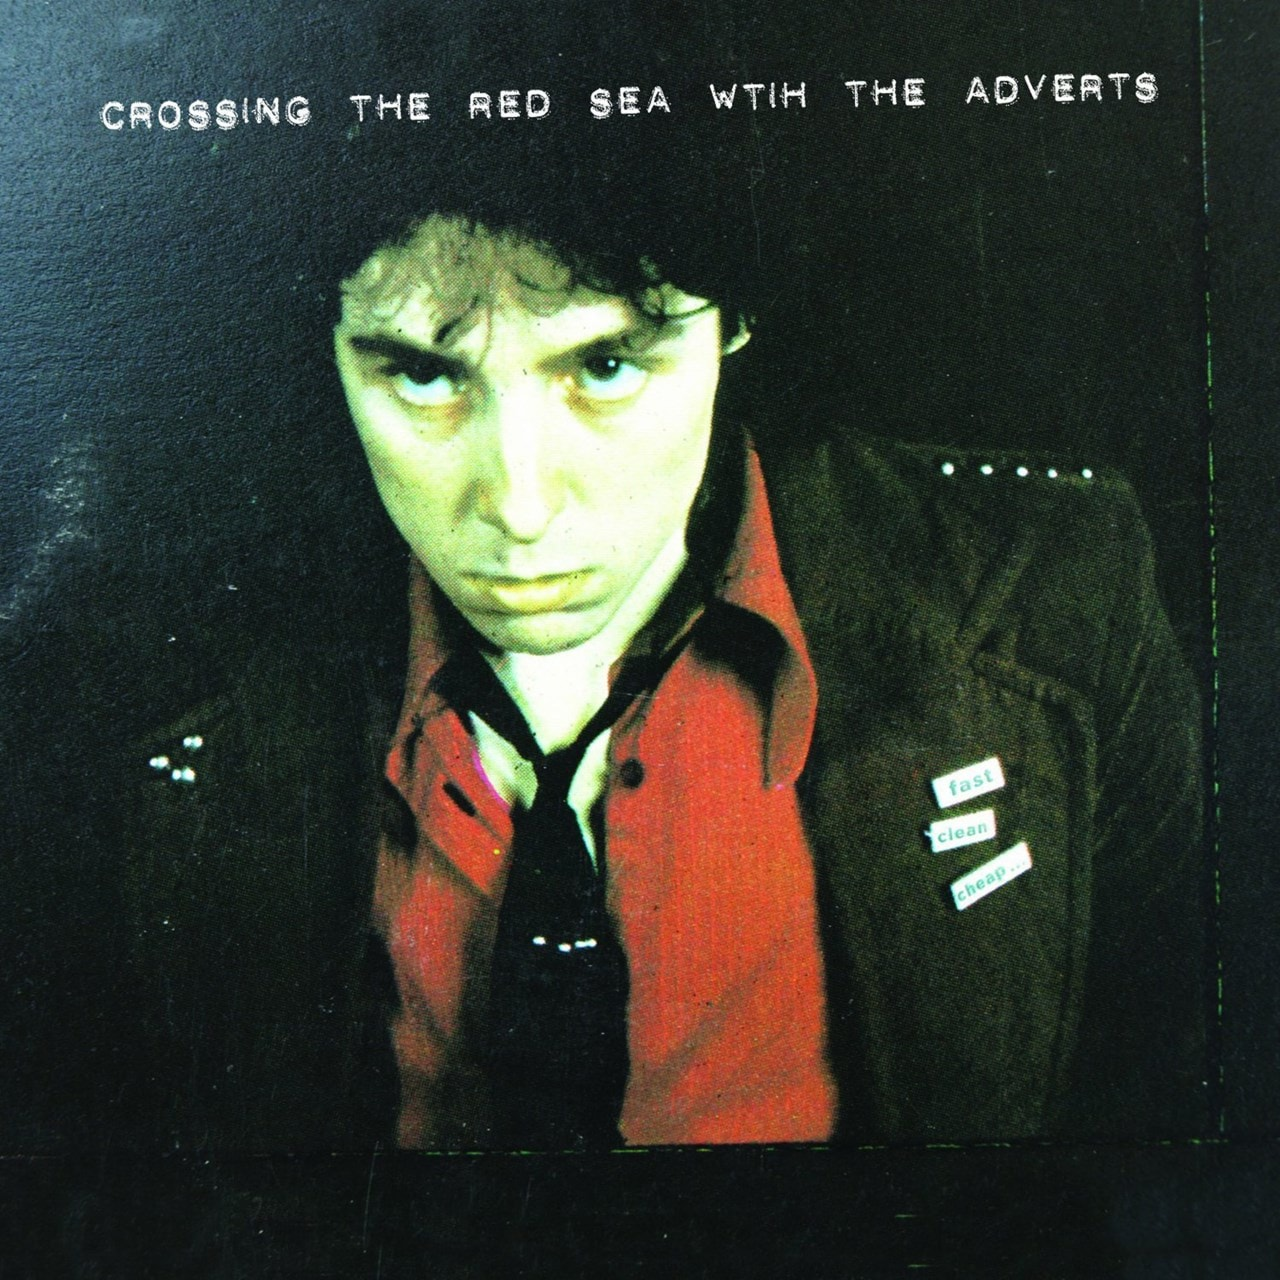 Crossing the Red Sea With the Adverts - 1